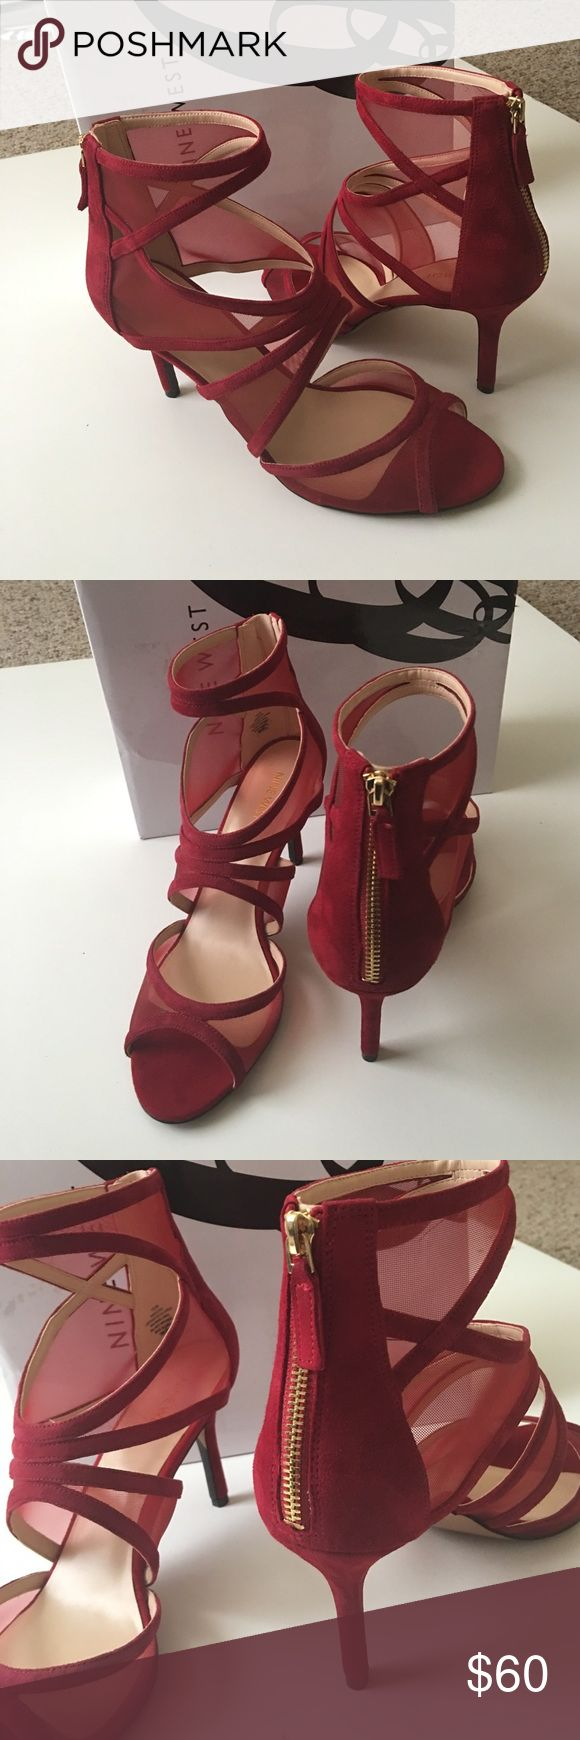 Nine West Heels Brand NEW Beautiful red heels never been worn. Accepting all reasonable offers. Nine West Shoes Heels